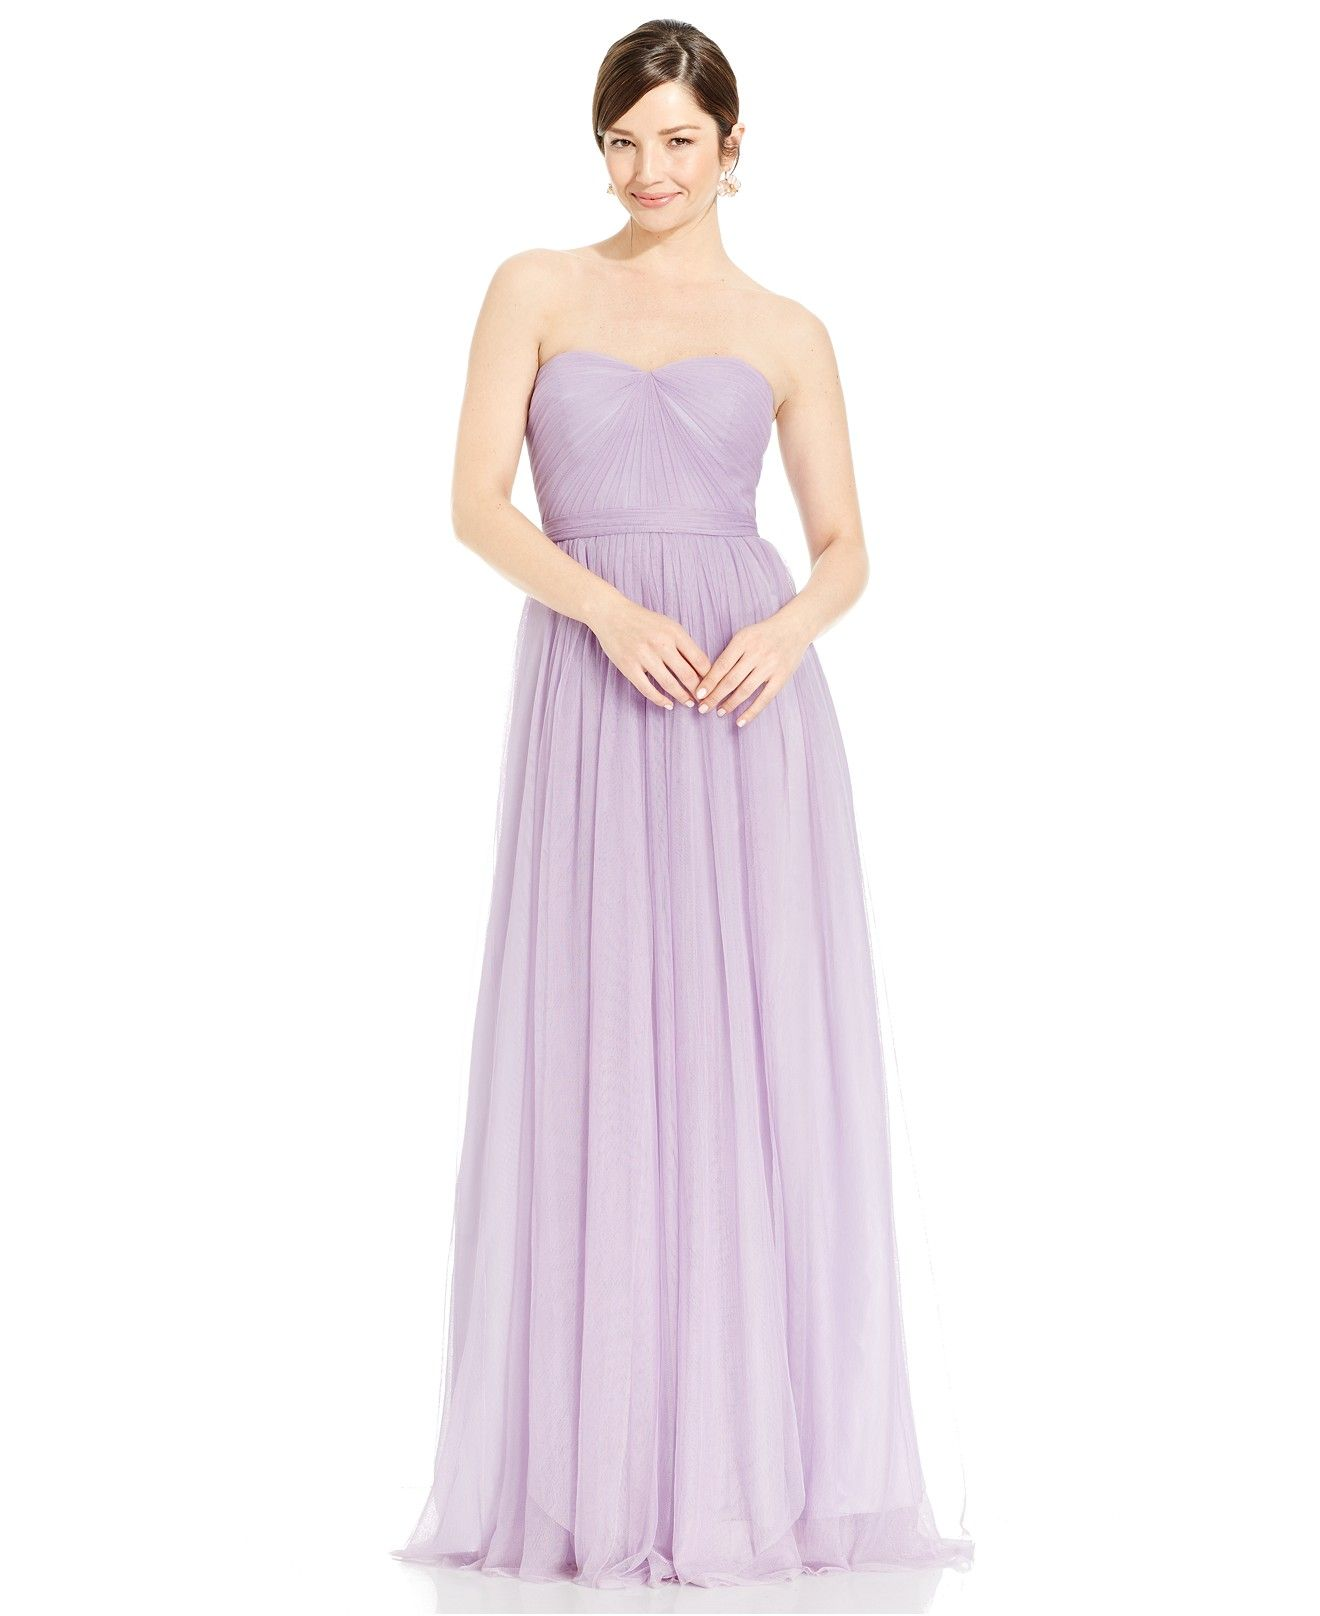 Adrianna papell pleated strapless tulle gown bridesmaids women adrianna papell pleated strapless tulle gown bridesmaids women macys ombrellifo Images